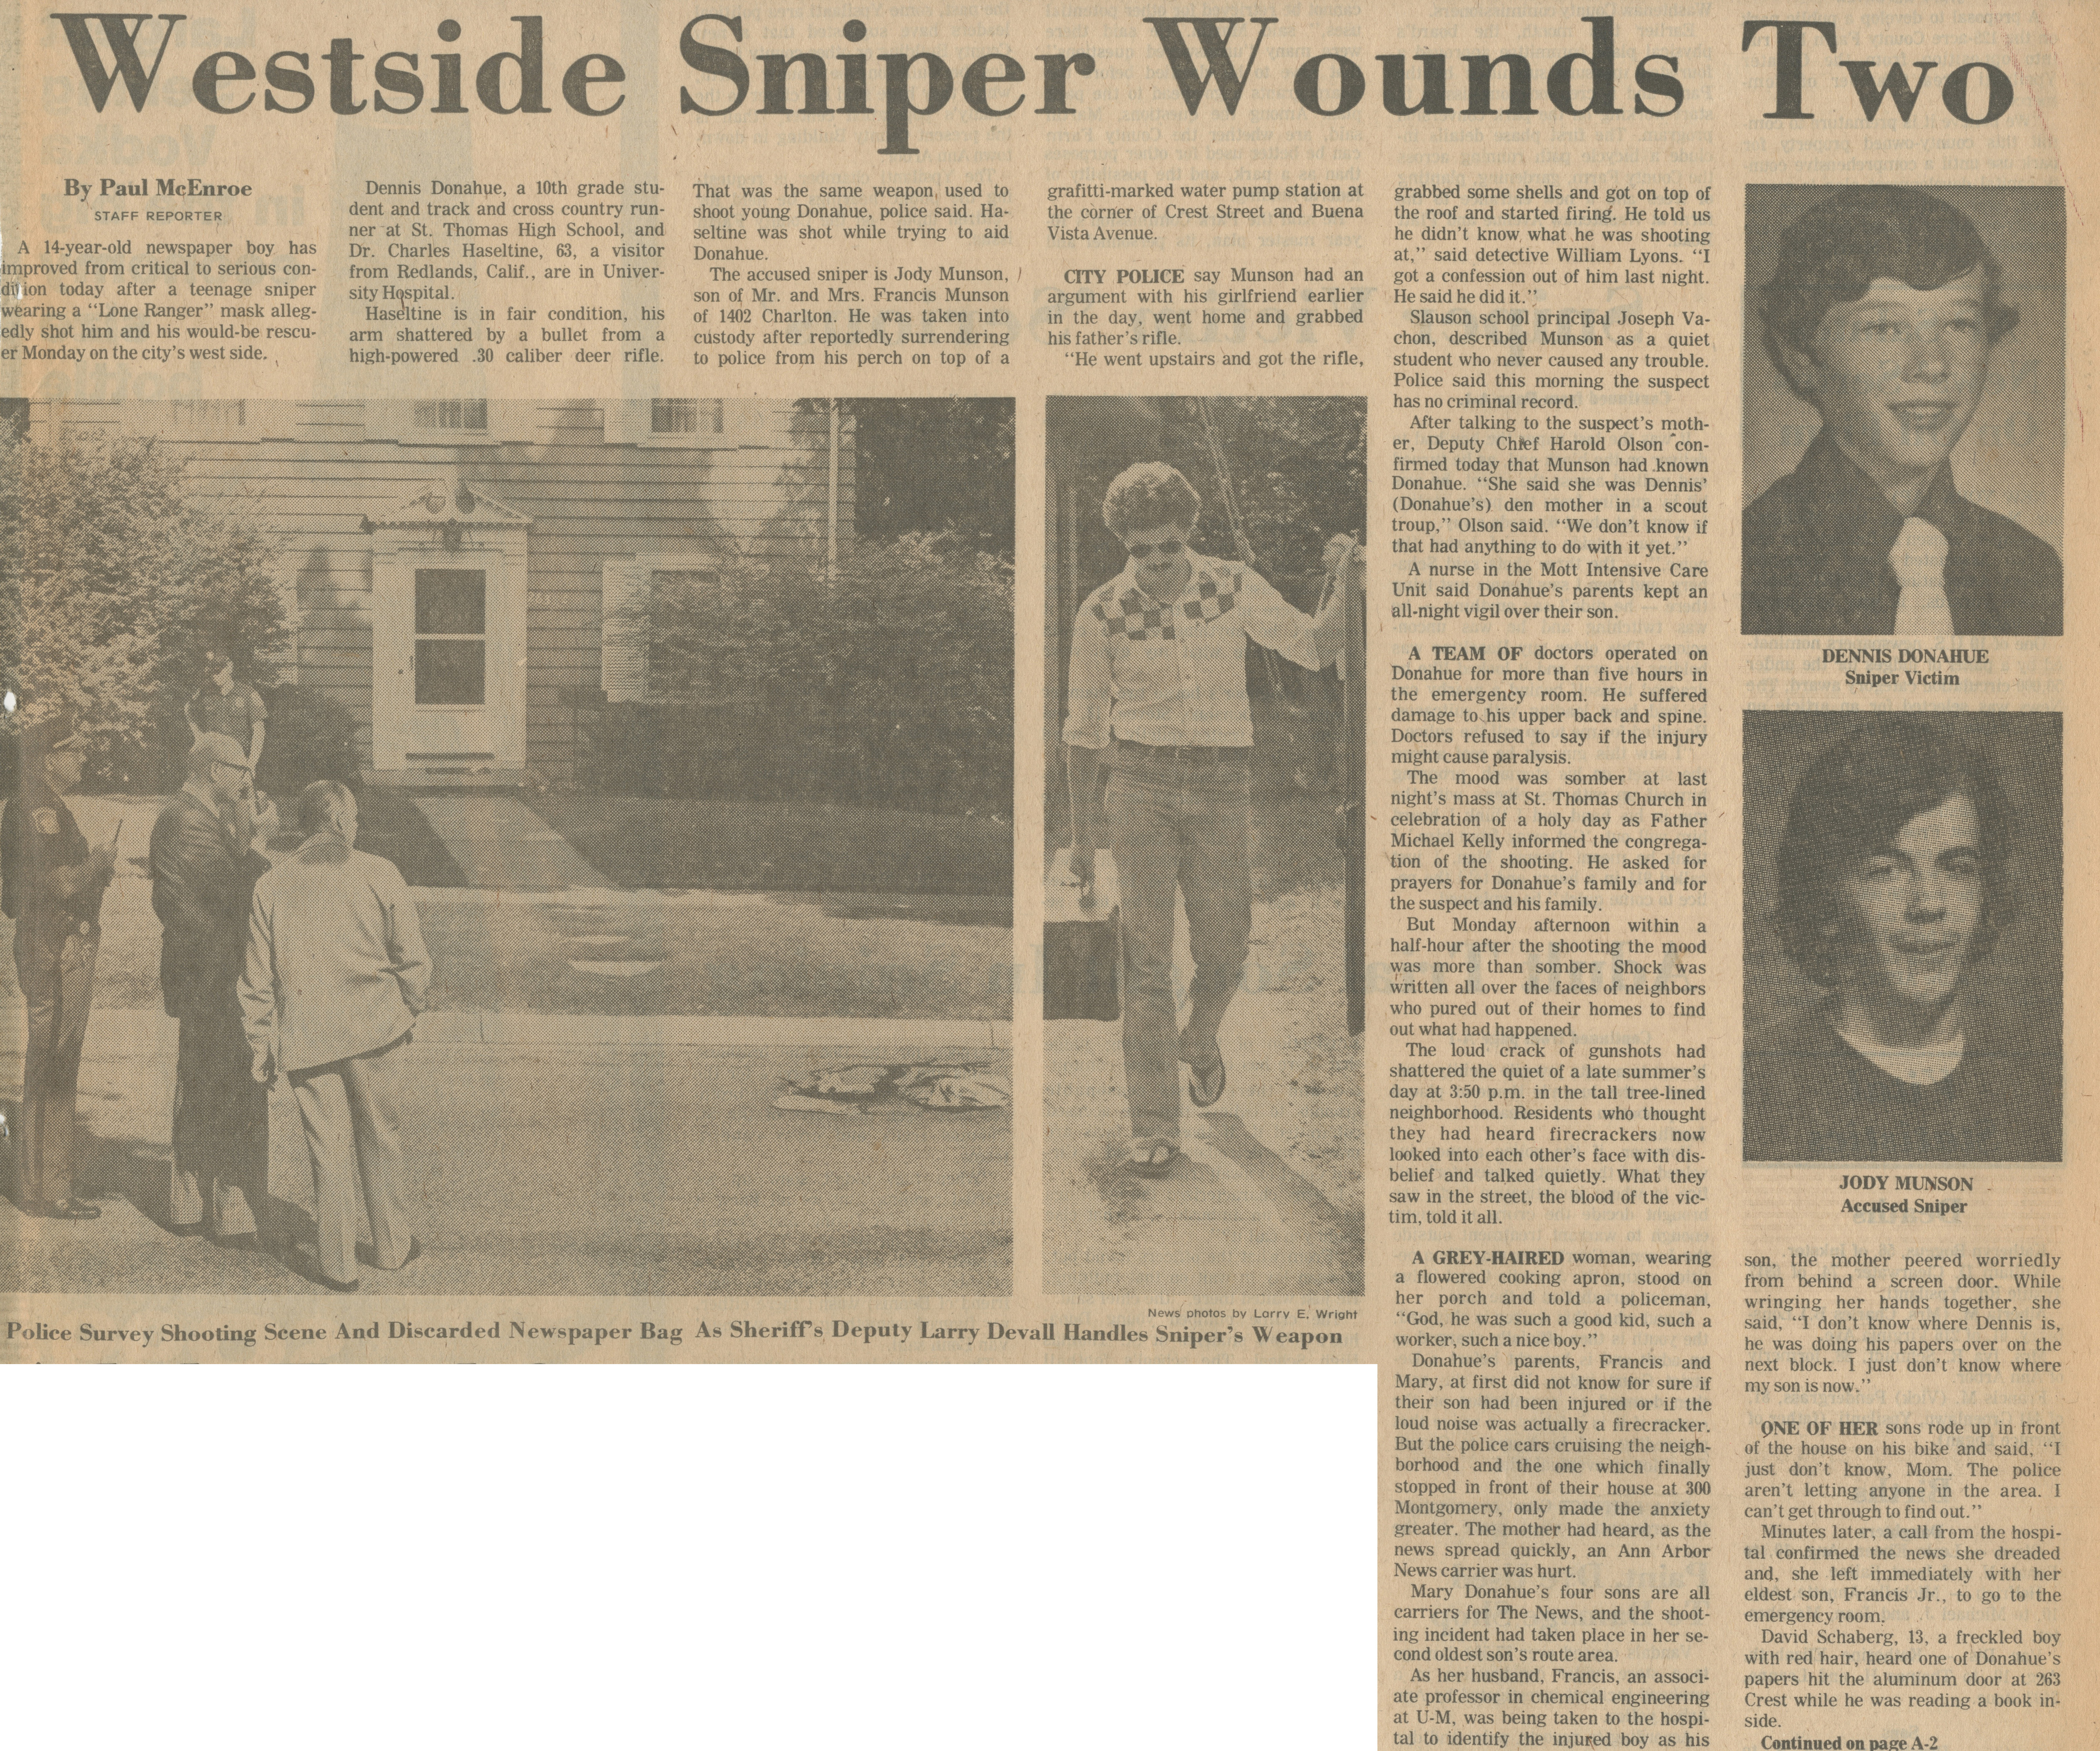 Westside Sniper Wounds Two image